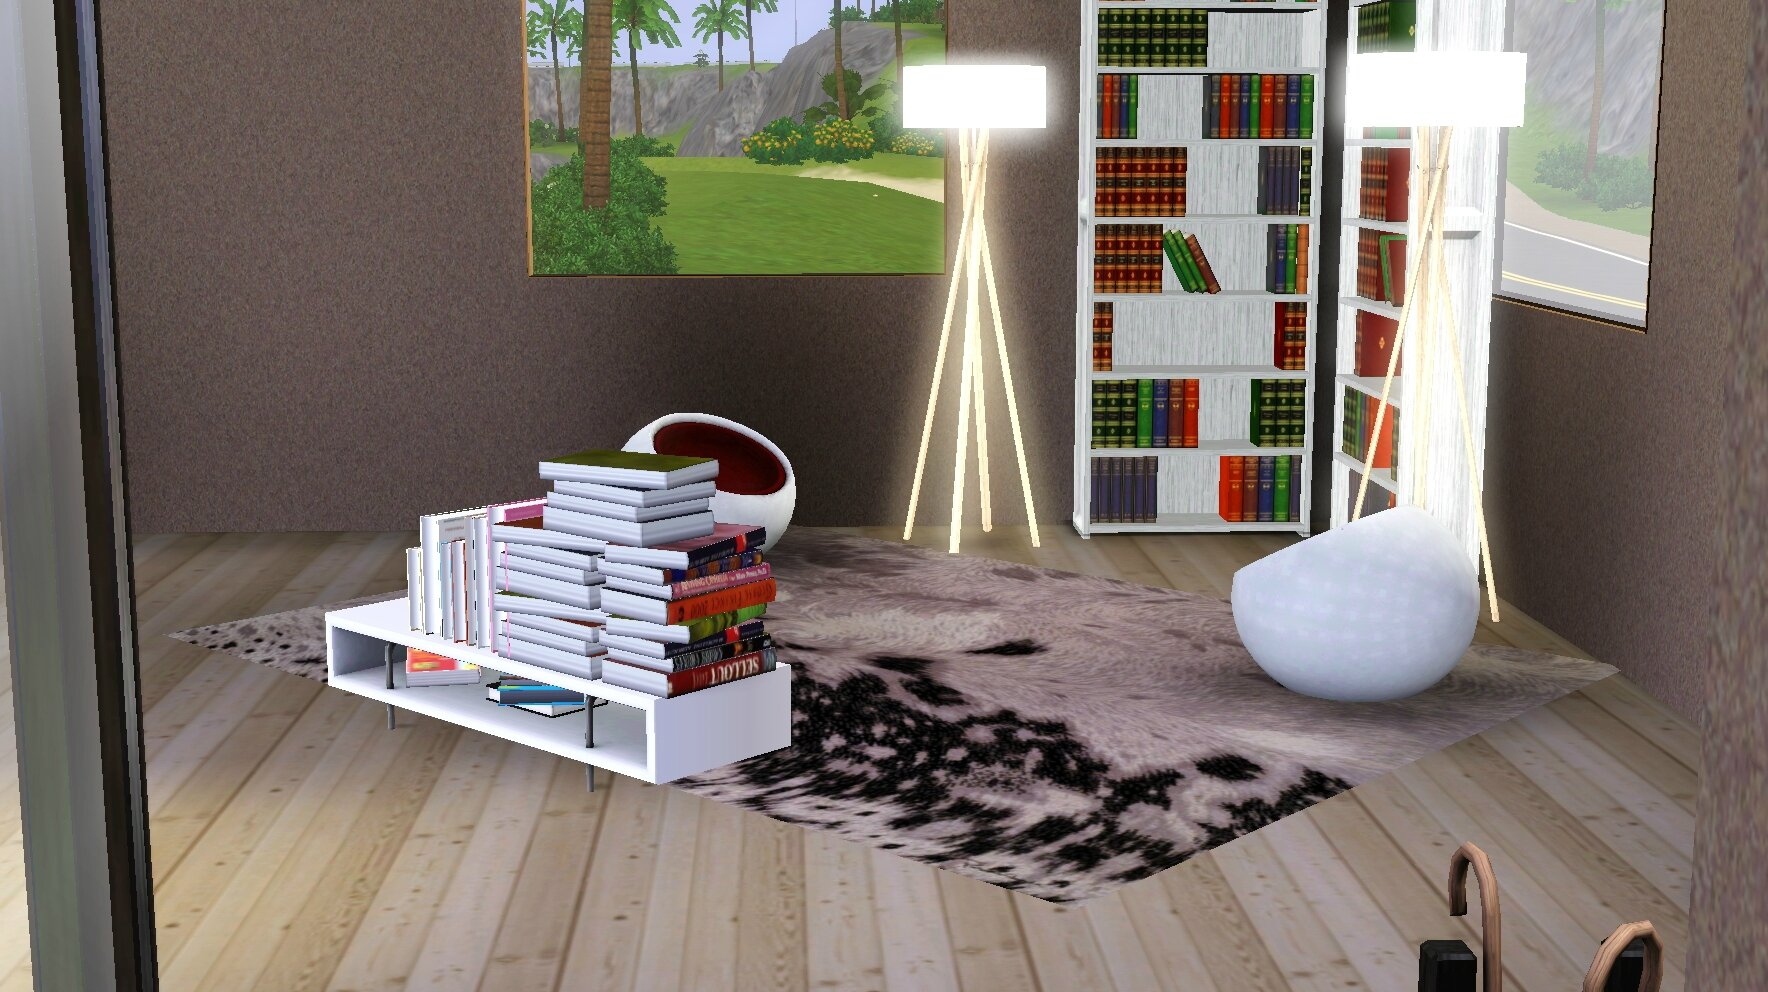 les maisons des sims fous. Black Bedroom Furniture Sets. Home Design Ideas